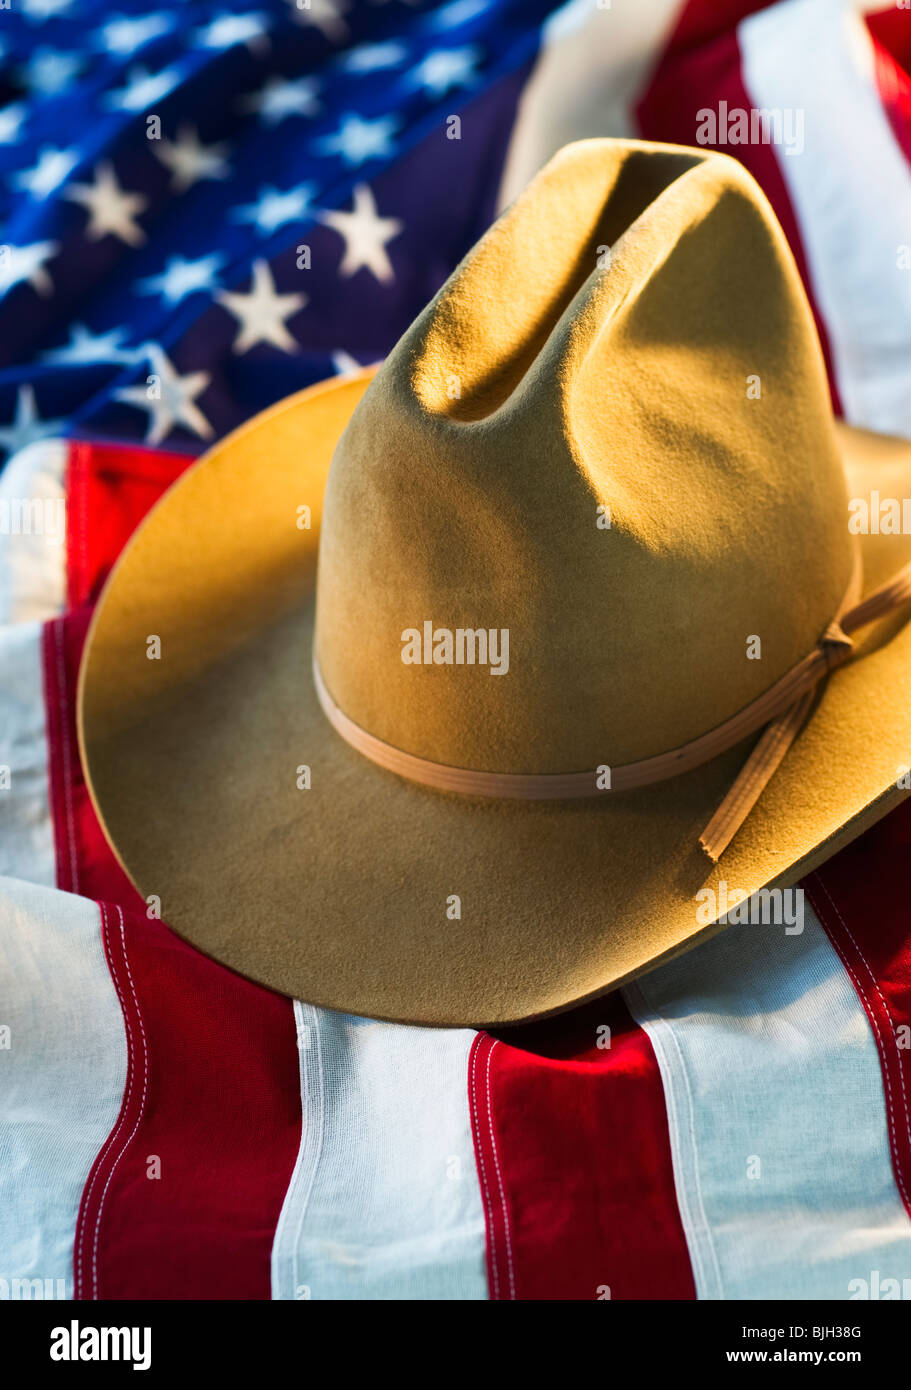 Cowboy hat on American flag - Stock Image